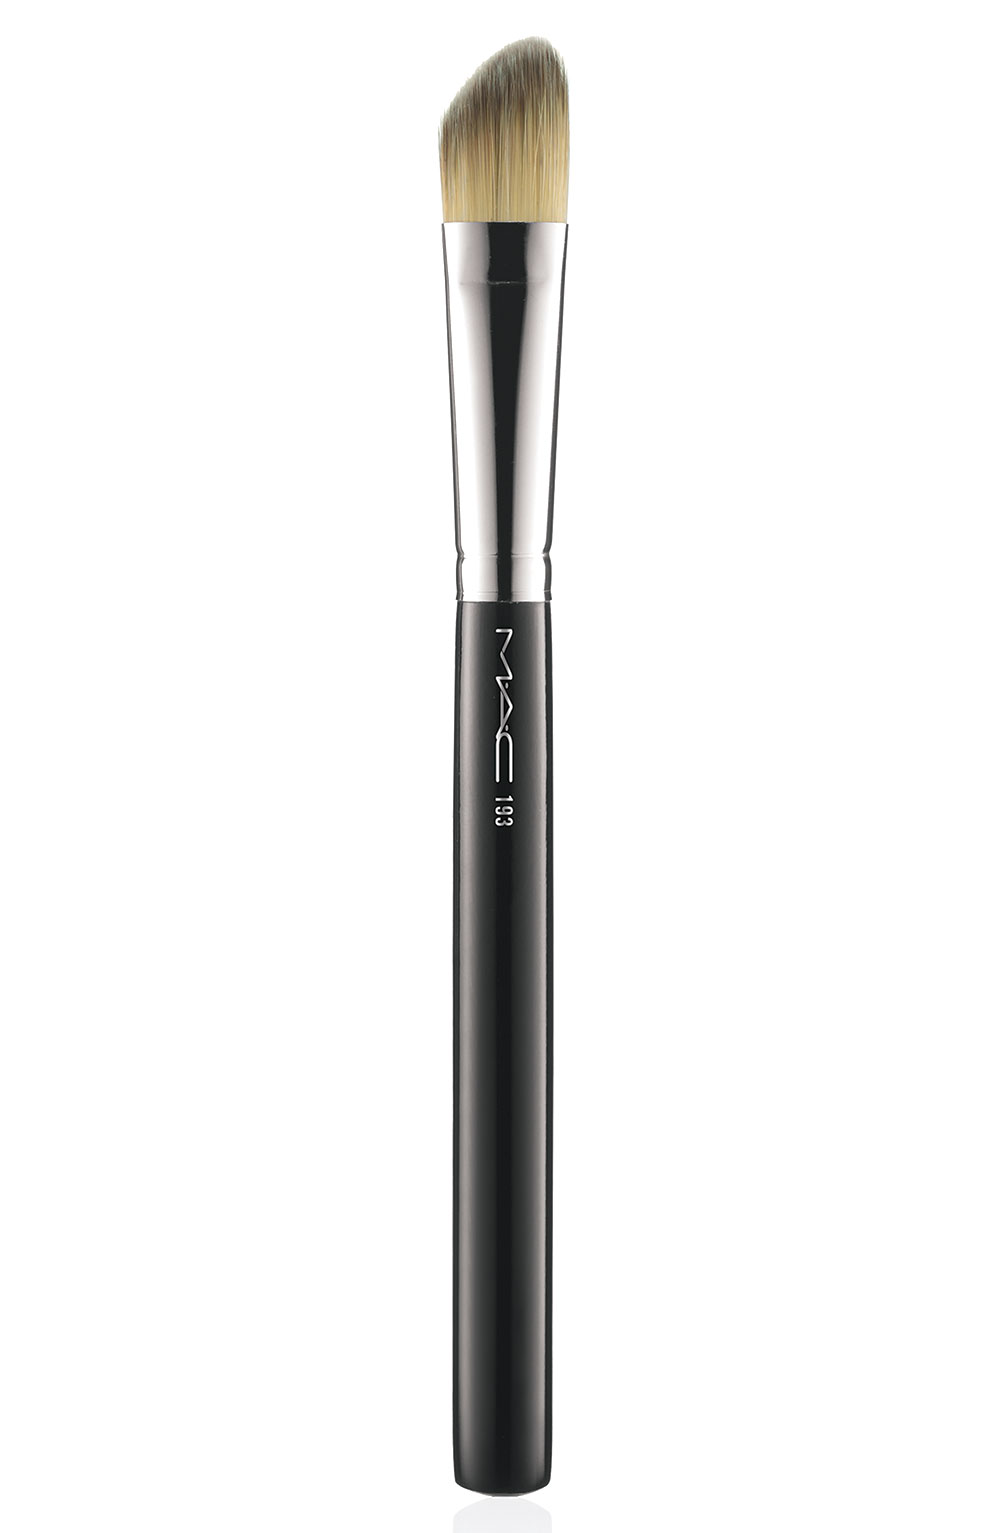 PRO-LONGWEAR-BRUSH-193-ANGLED-FOUNDATION_300